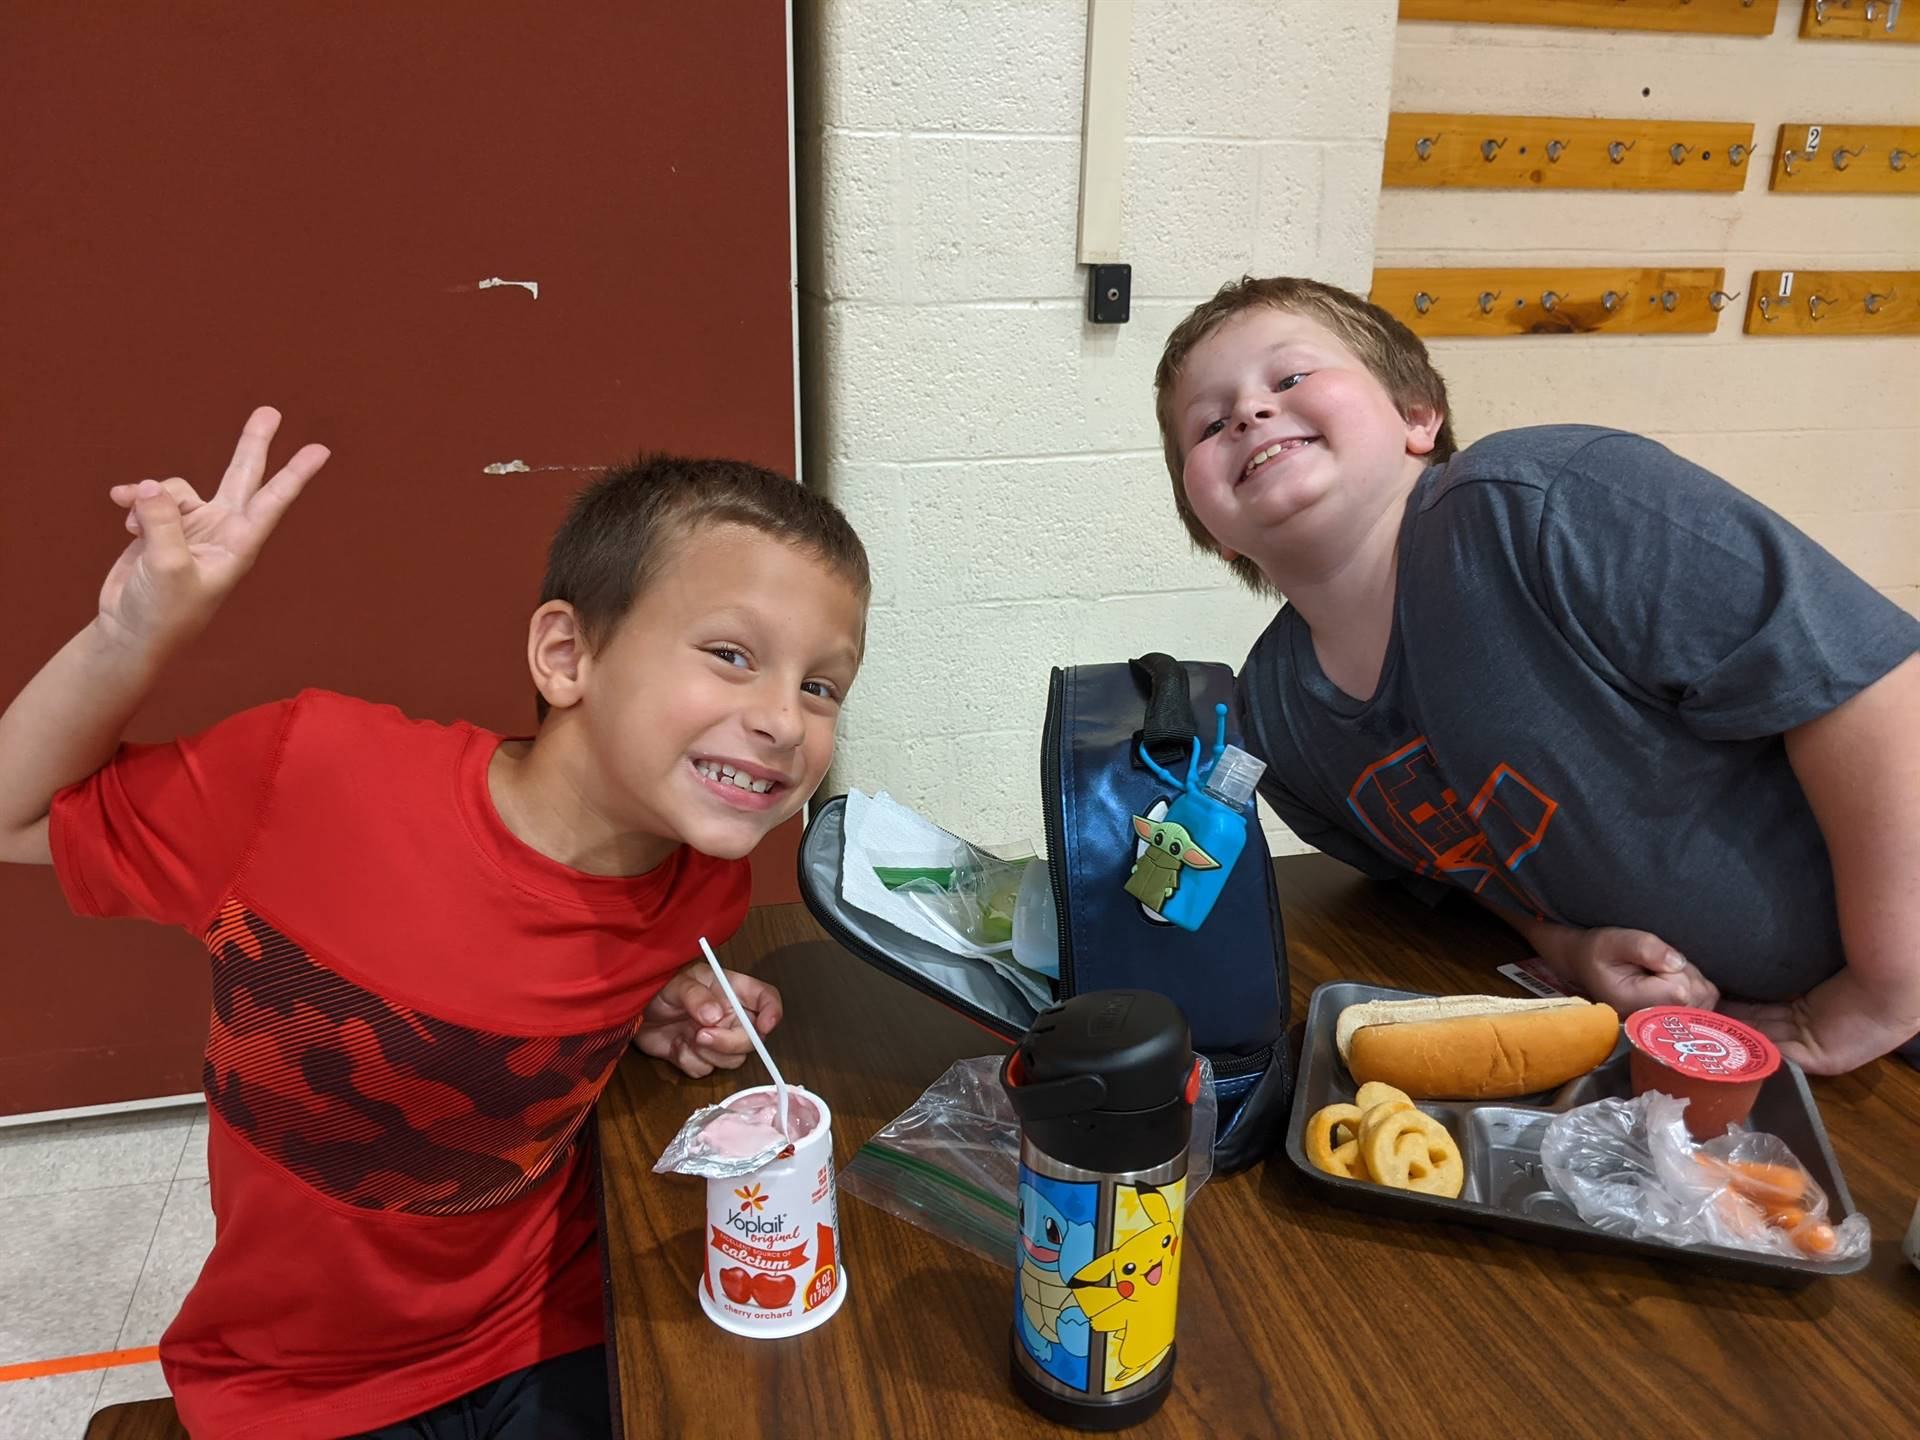 Photo 2:  2 Munson students sitting together at lunch at a table and smiling for the camera - one is